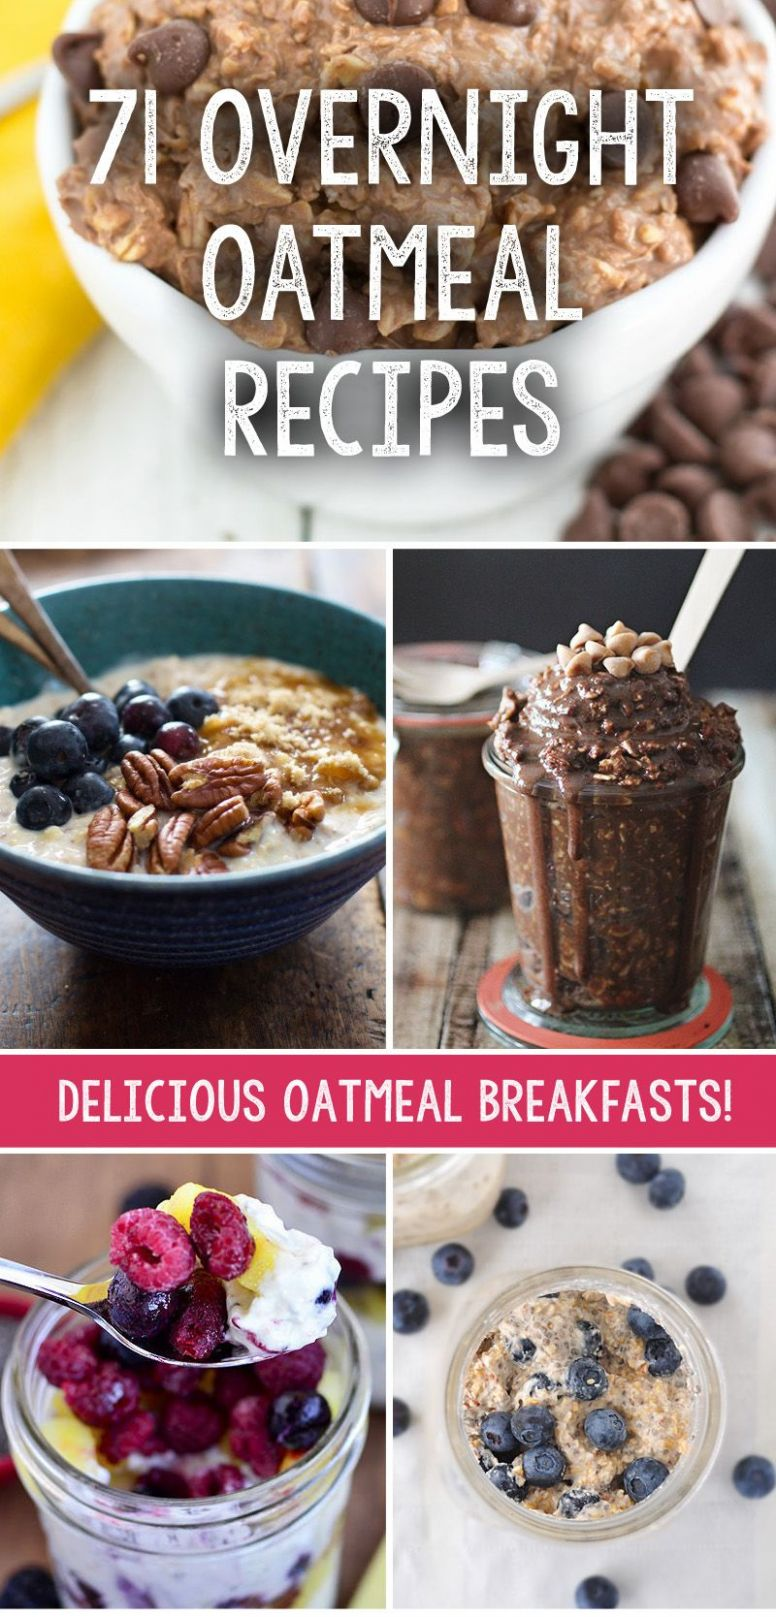 We have collected 11 incredible overnight oatmeal recipes that ..